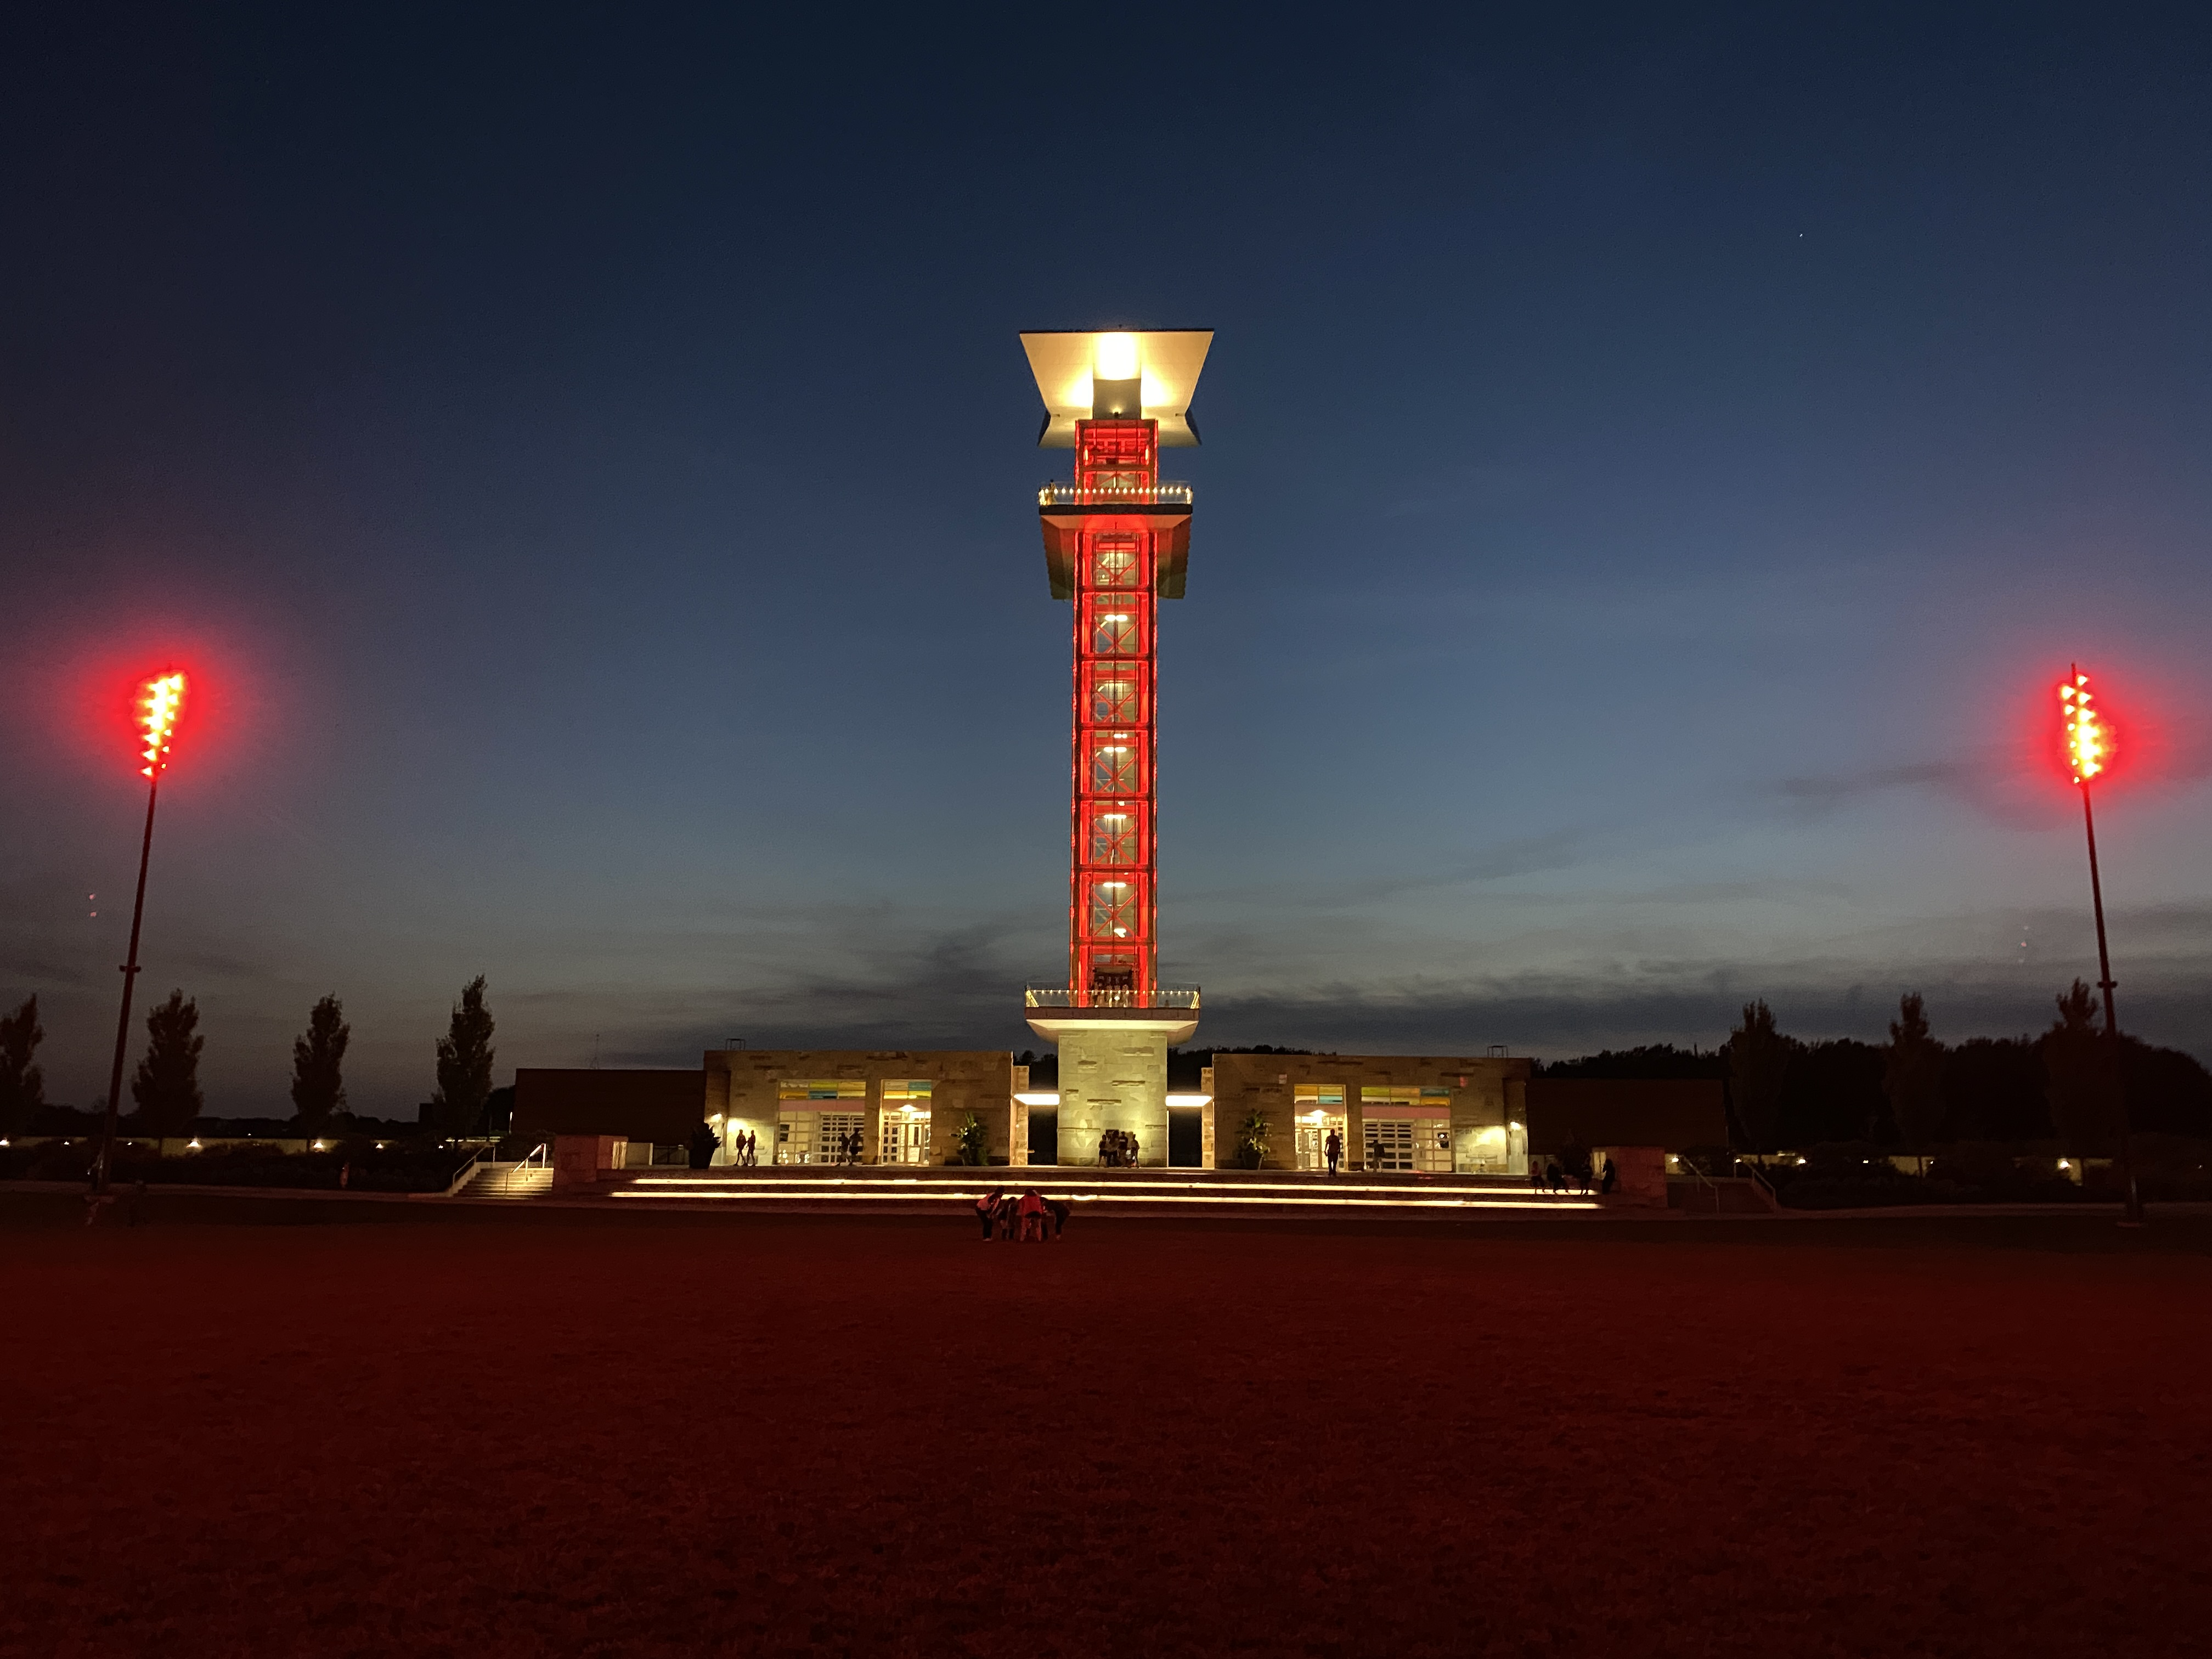 Observation Tower glows red